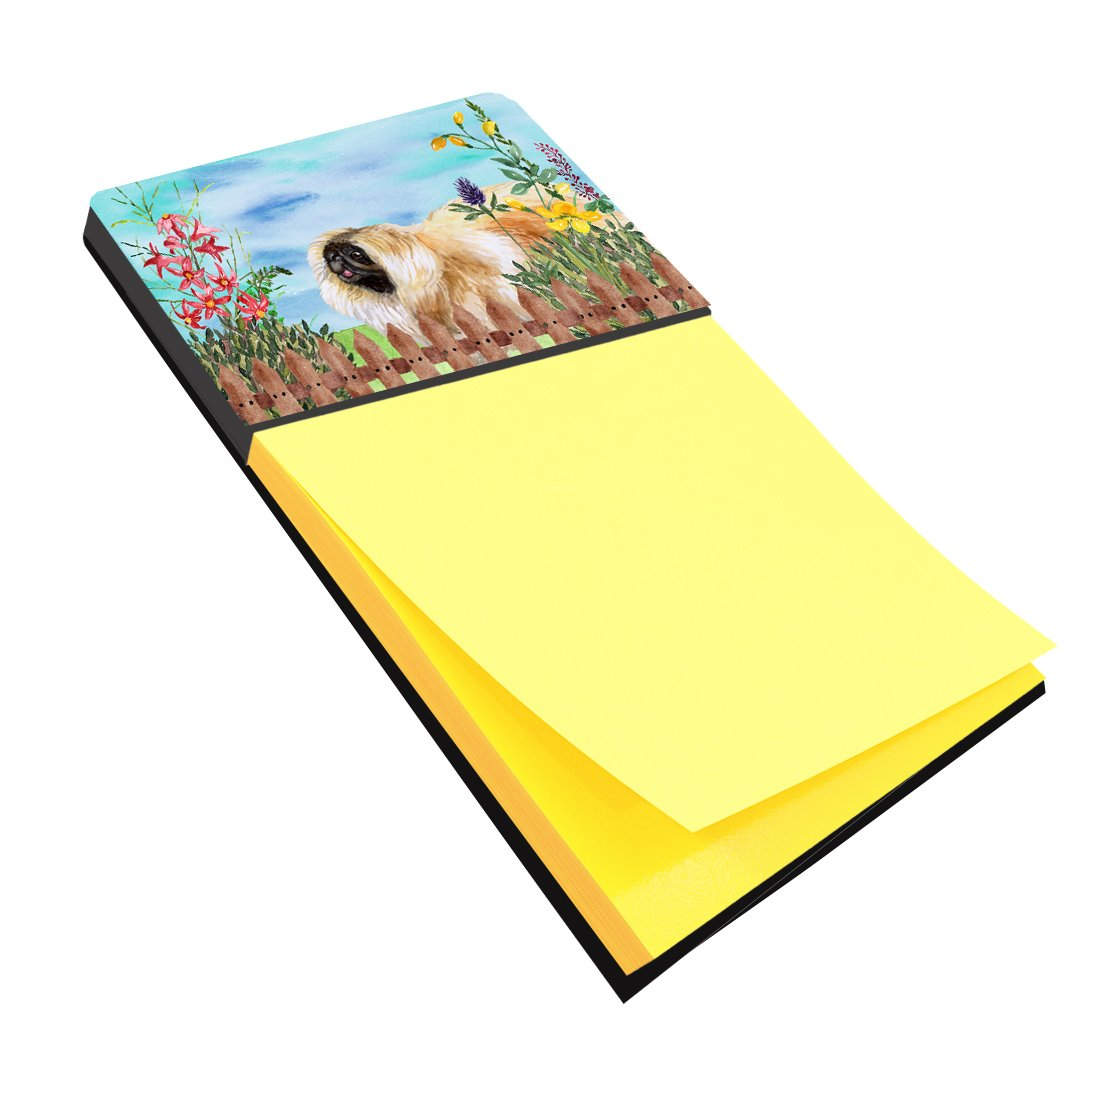 Pekingese Spring Sticky Note Holder CK1243SN by Caroline's Treasures